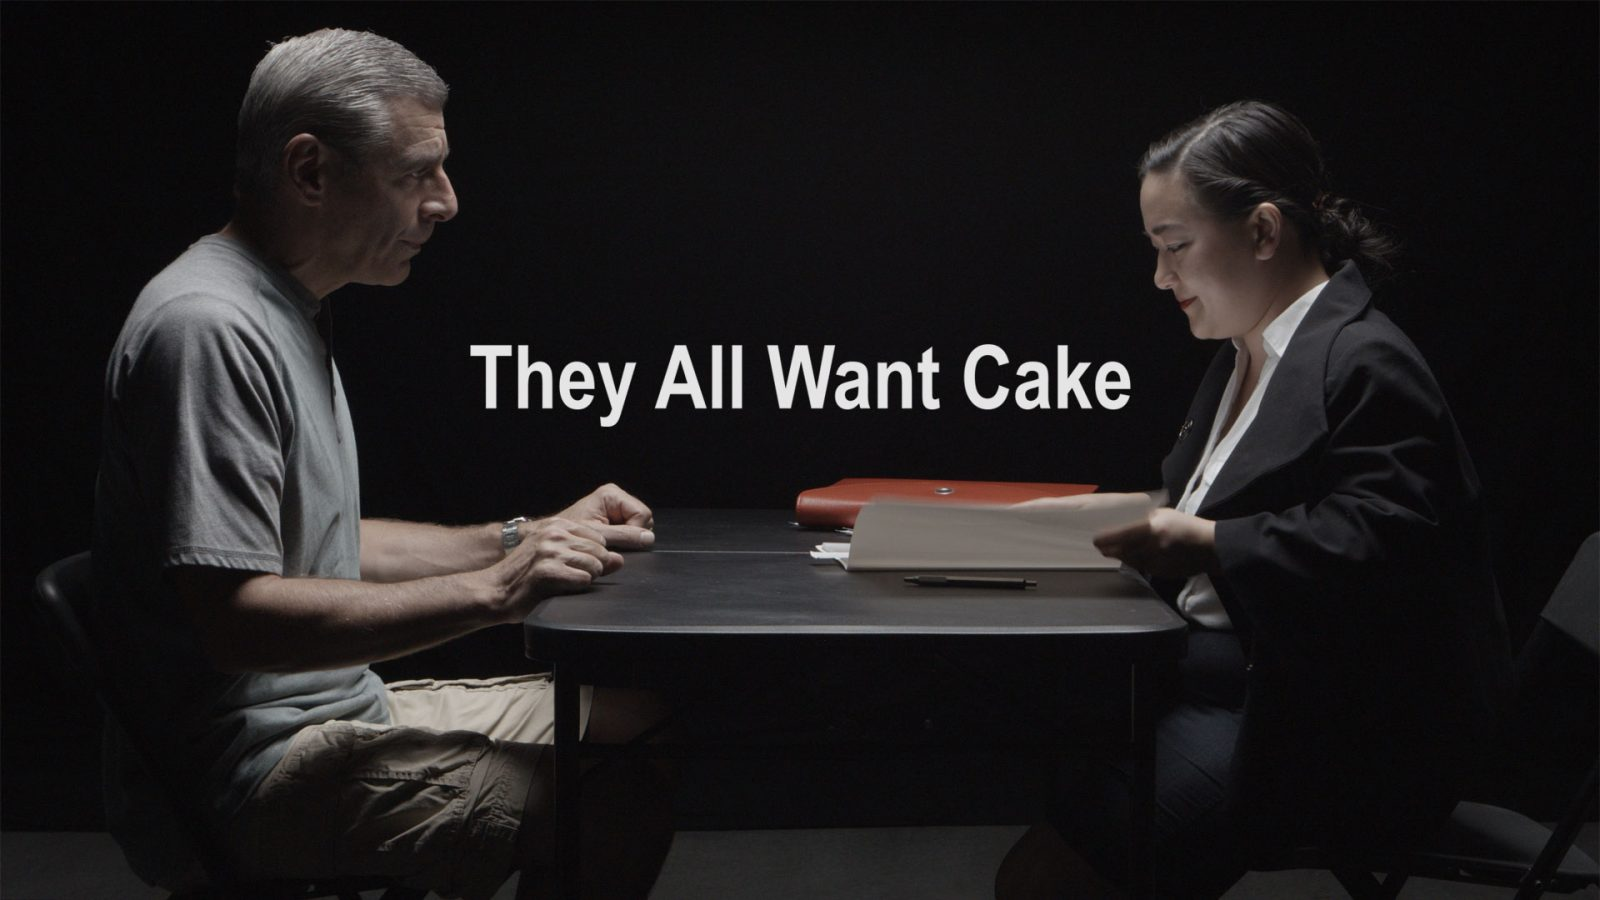 They All Want Cake